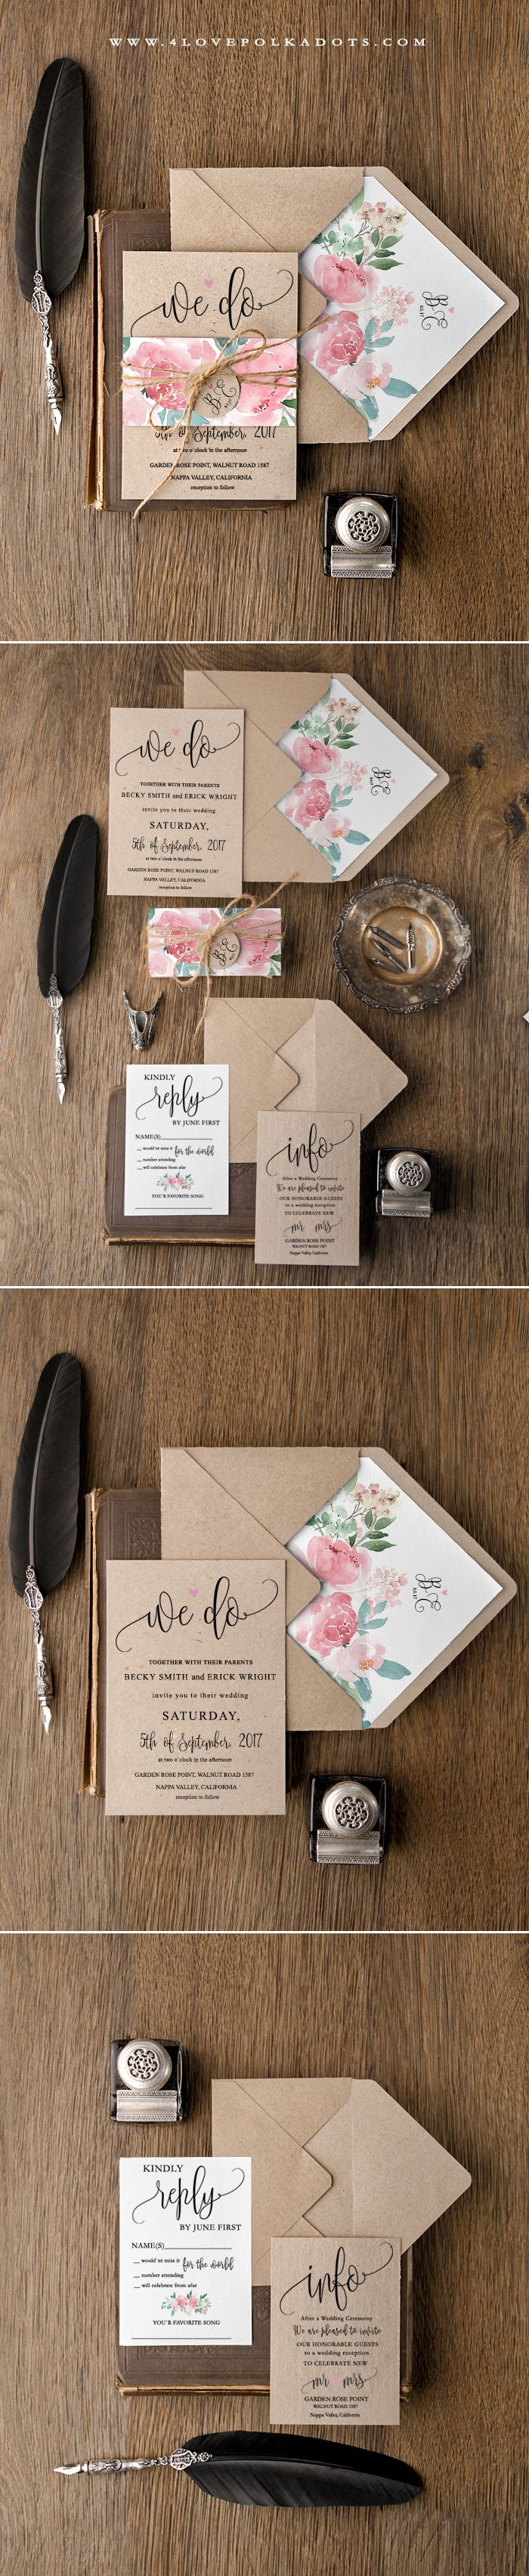 Romantic Floral Wedding Invitation - fully custmized #weddinginvitations